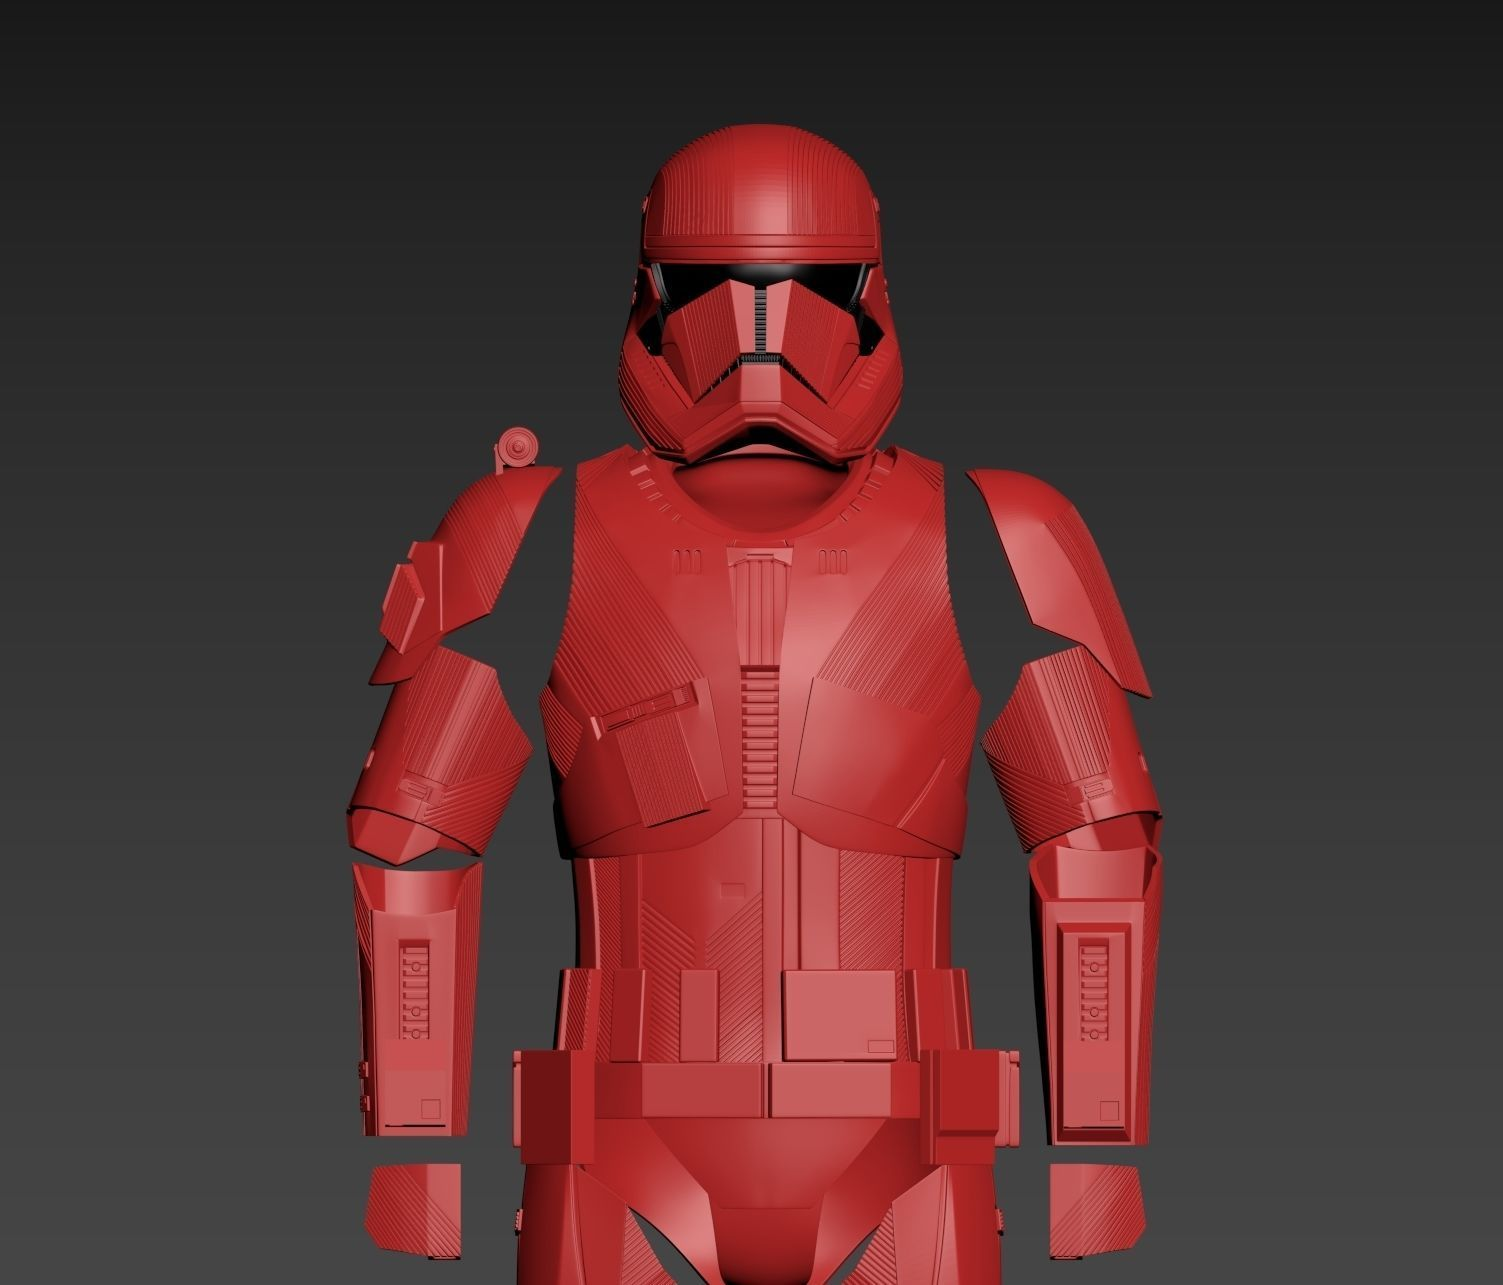 Star Wars EP9 The Rise of Skywalker Sith Trooper Full Armor